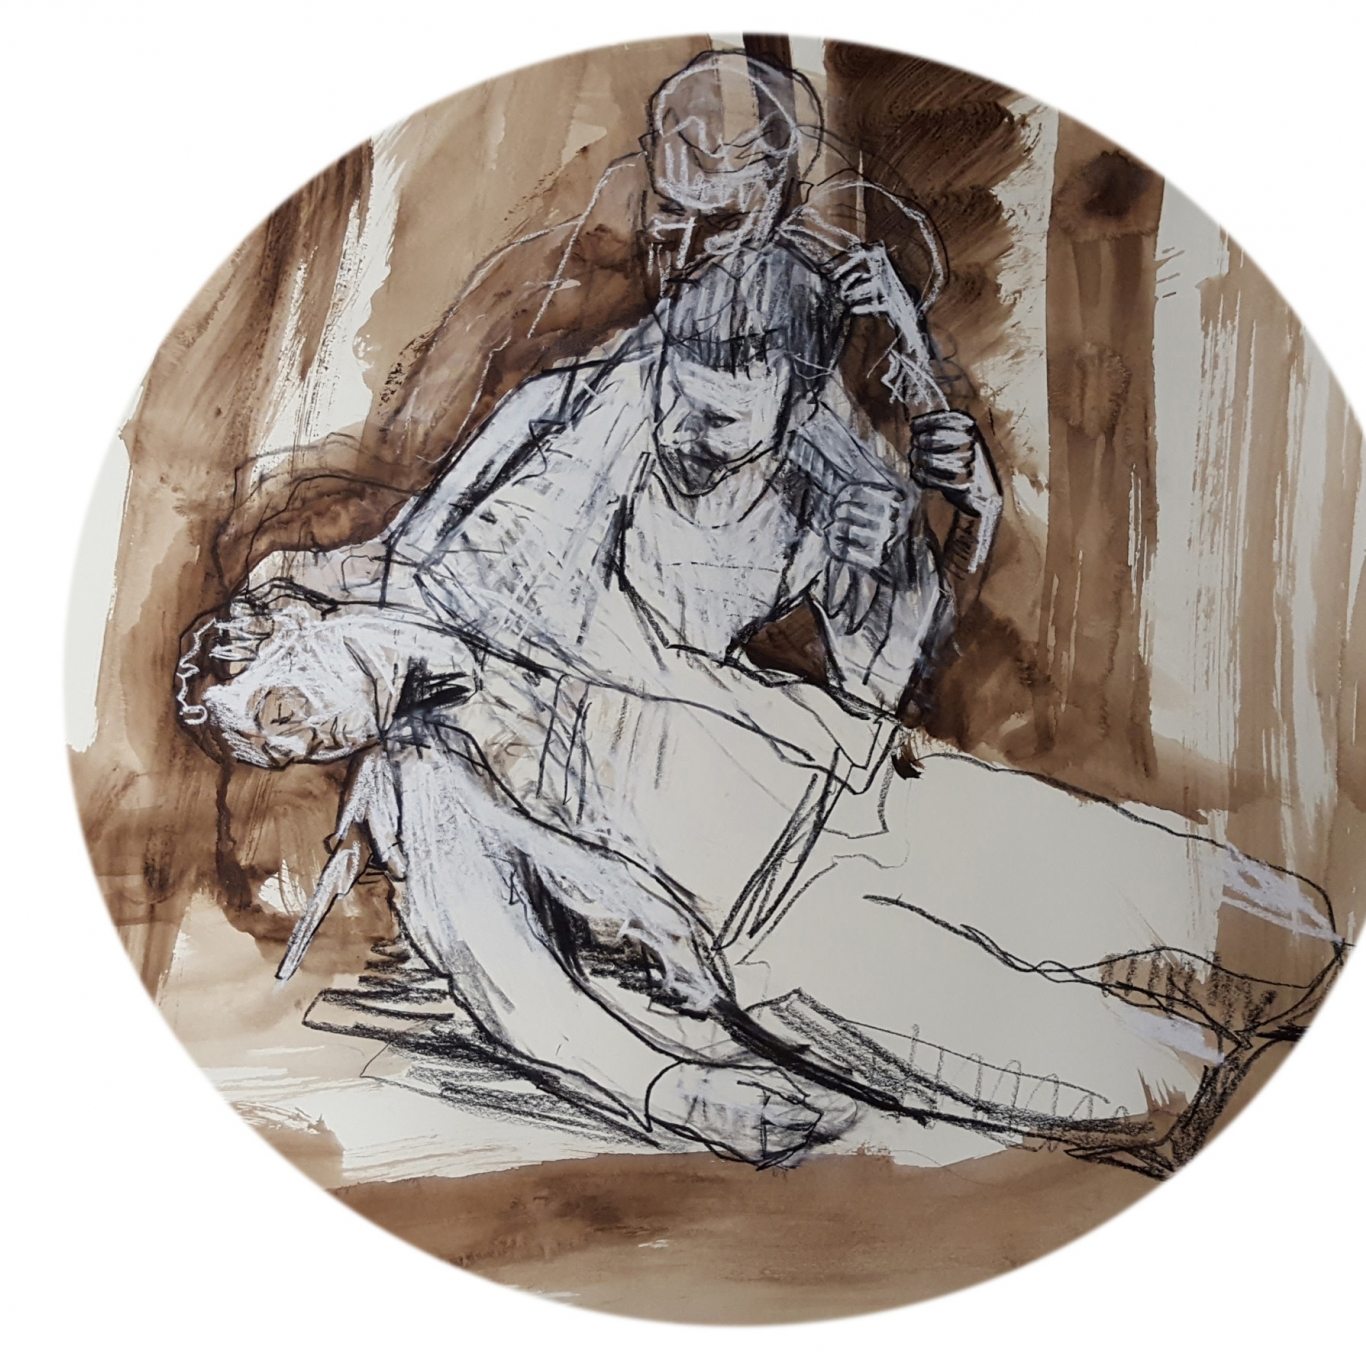 Circular cropped hand-drawn image of man holding another man who is prone on the ground.